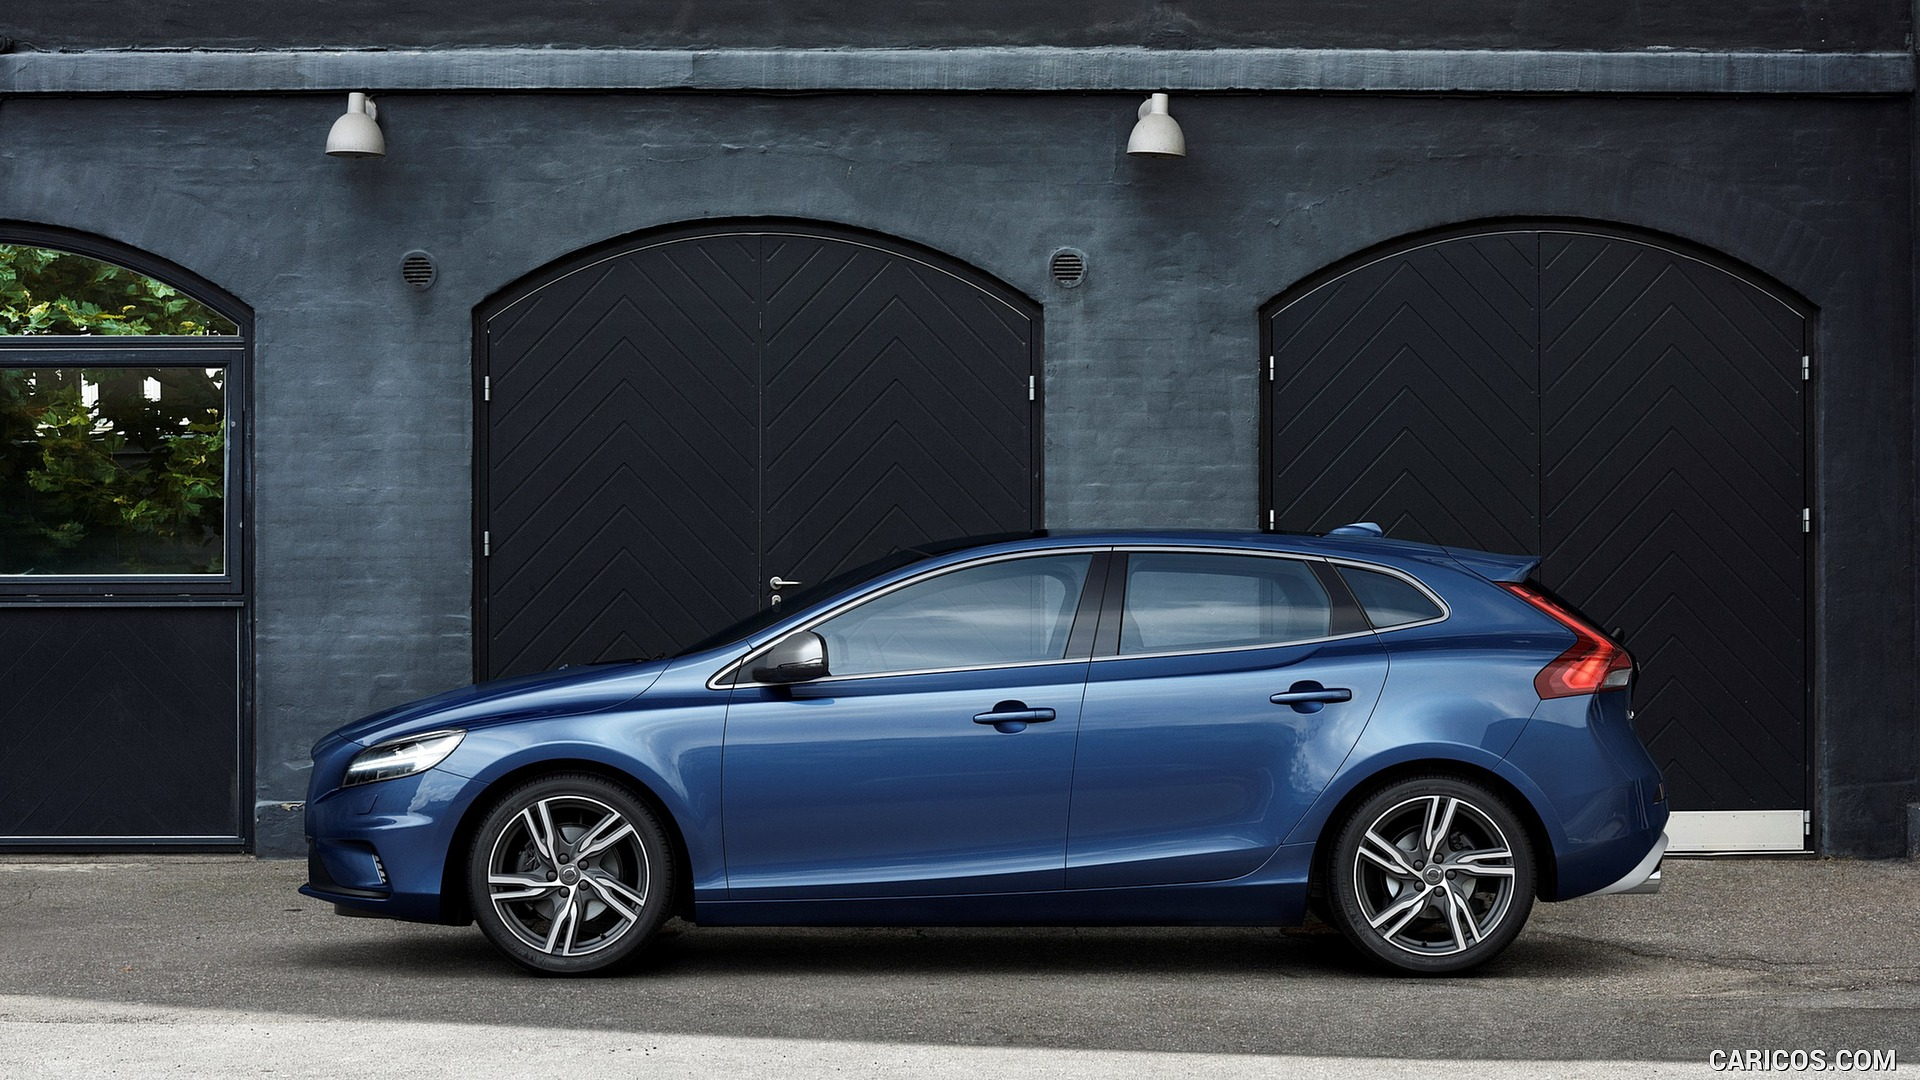 2017 Volvo V40 T5 R design   Side HD Wallpaper 11 1920x1080